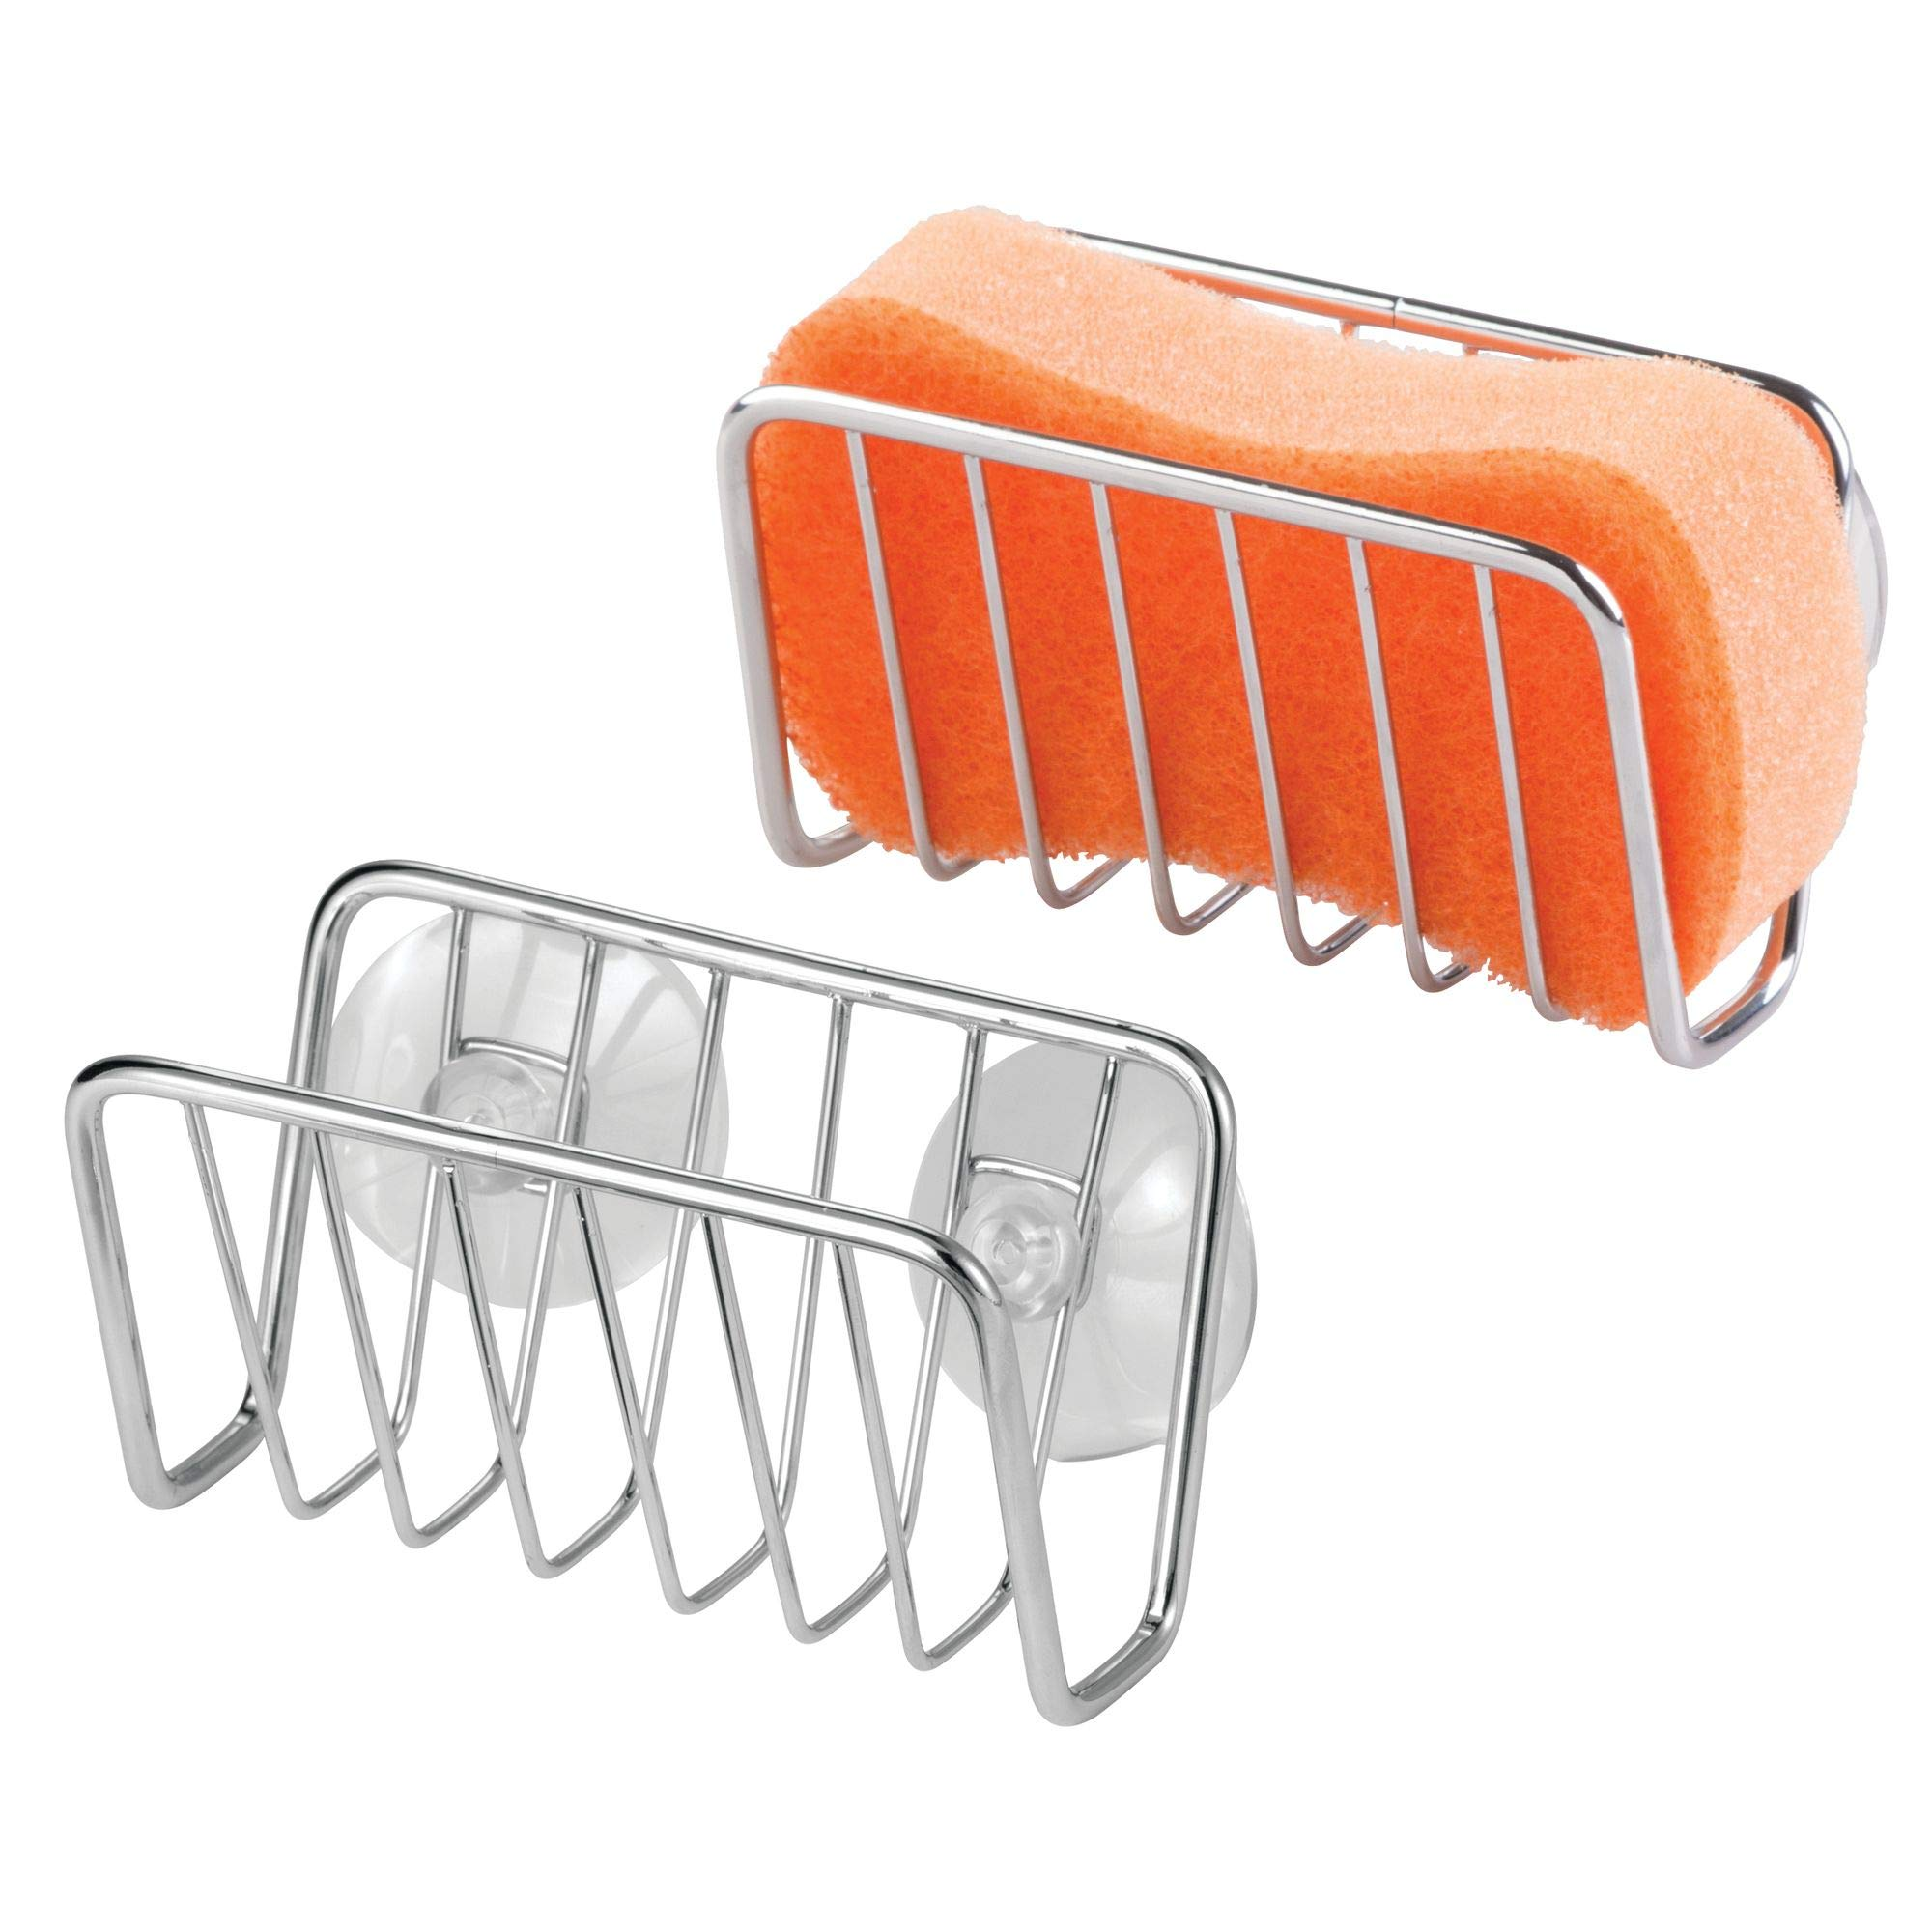 mDesign Kitchen Sink Organizer Caddy, Storage Holder for Sponges, Soaps, Scrubbers - Quick Drying Wire Basket Design with Strong Suction Cups - Pack of 2, Chrome